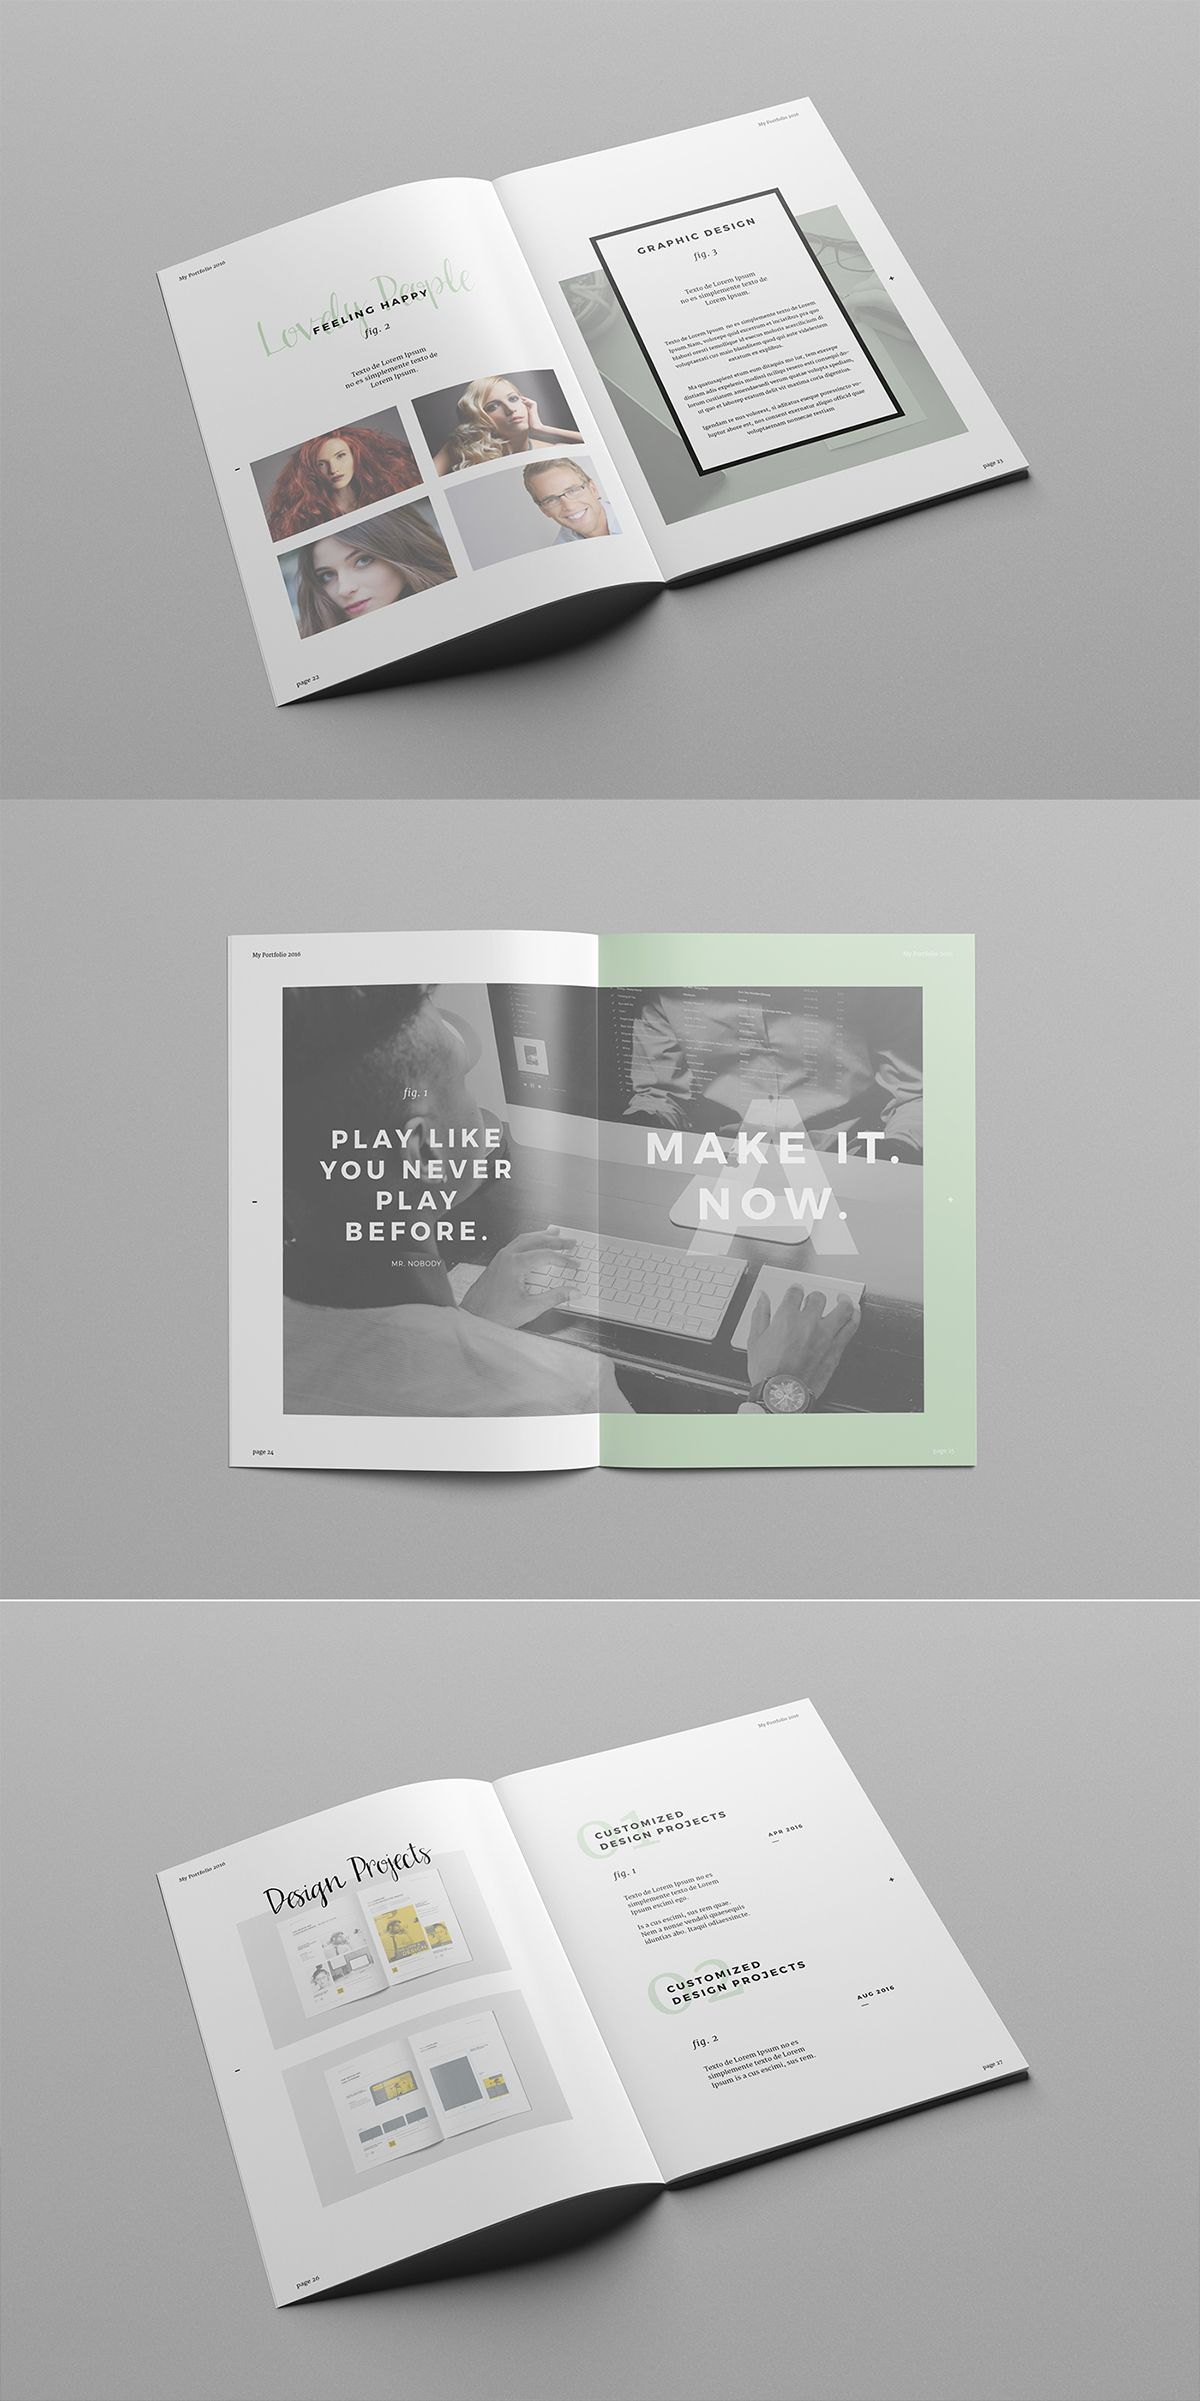 Work And Portfolio Templateminimal Professional Template For Creative Businesses Created In Adobe Indesign International Din A4